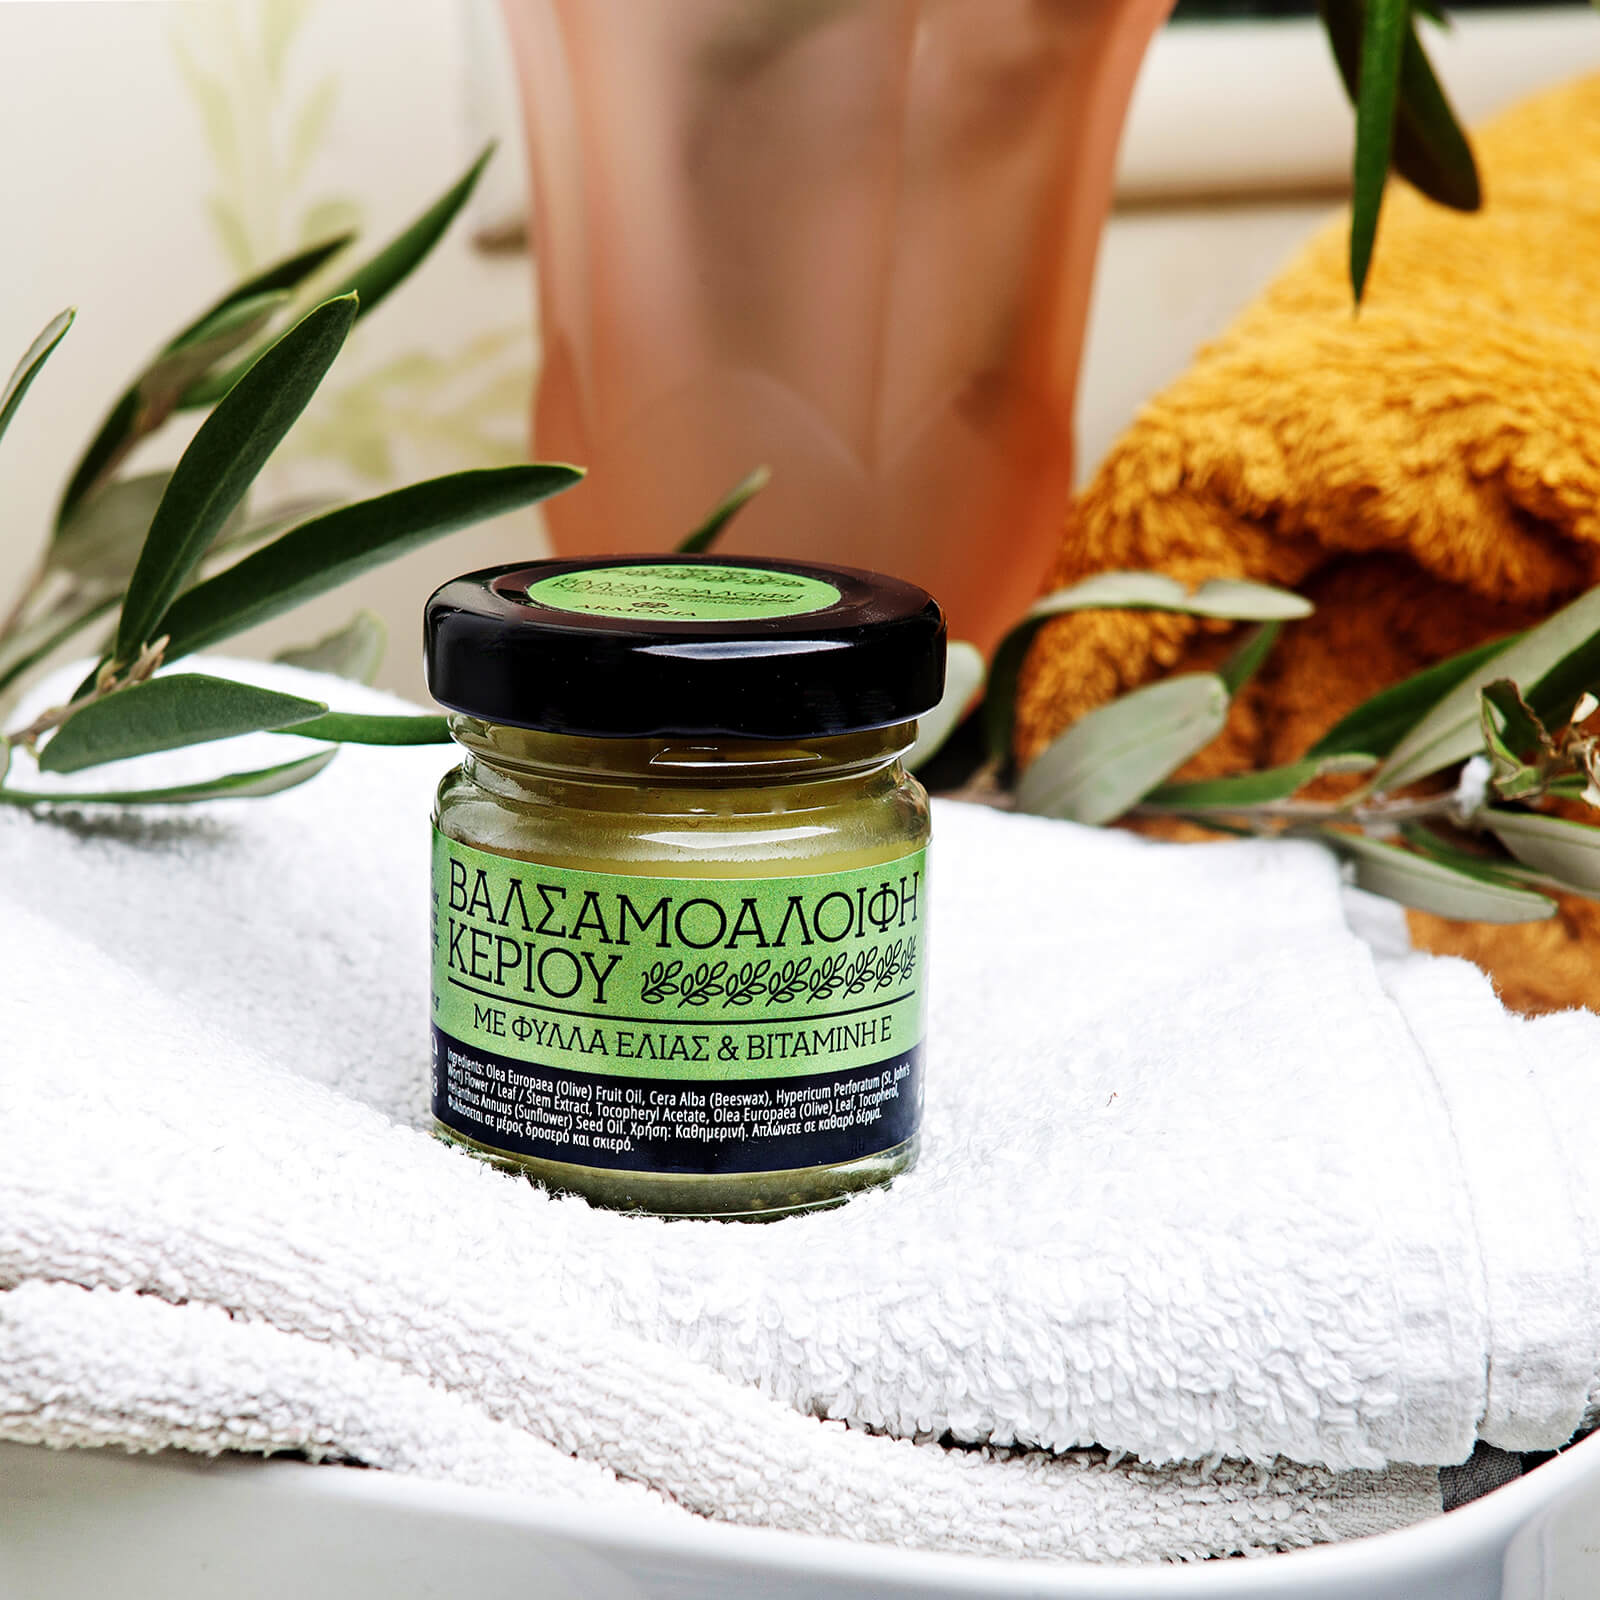 St. John's wort oil wax cream olive leaves vitamin E natural cosmetics 100 made in Greece parabens sls